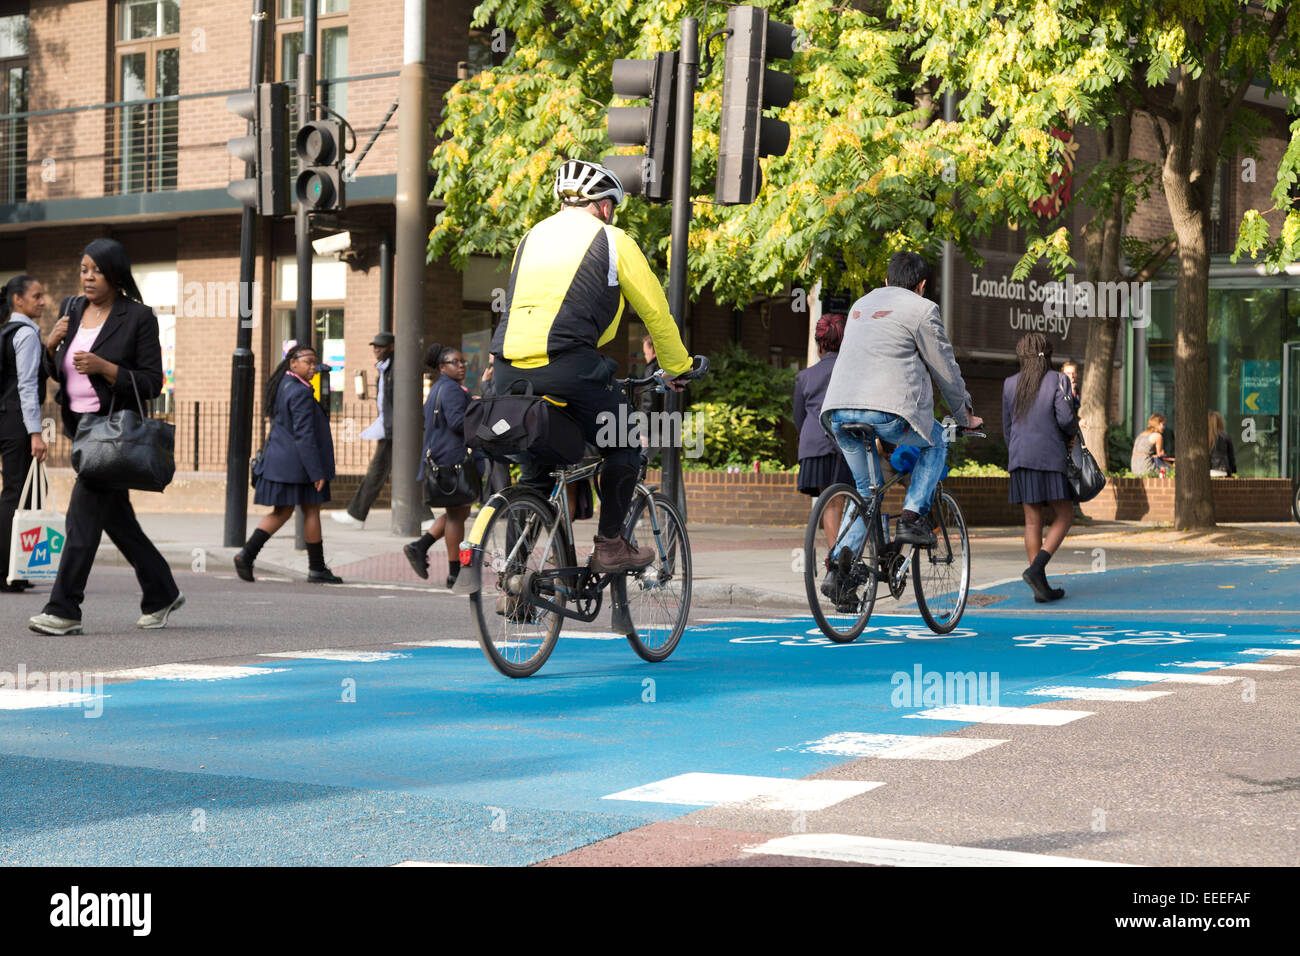 Ciclo CS7 autopista atraviesa London Road fuera Southbank University Imagen De Stock